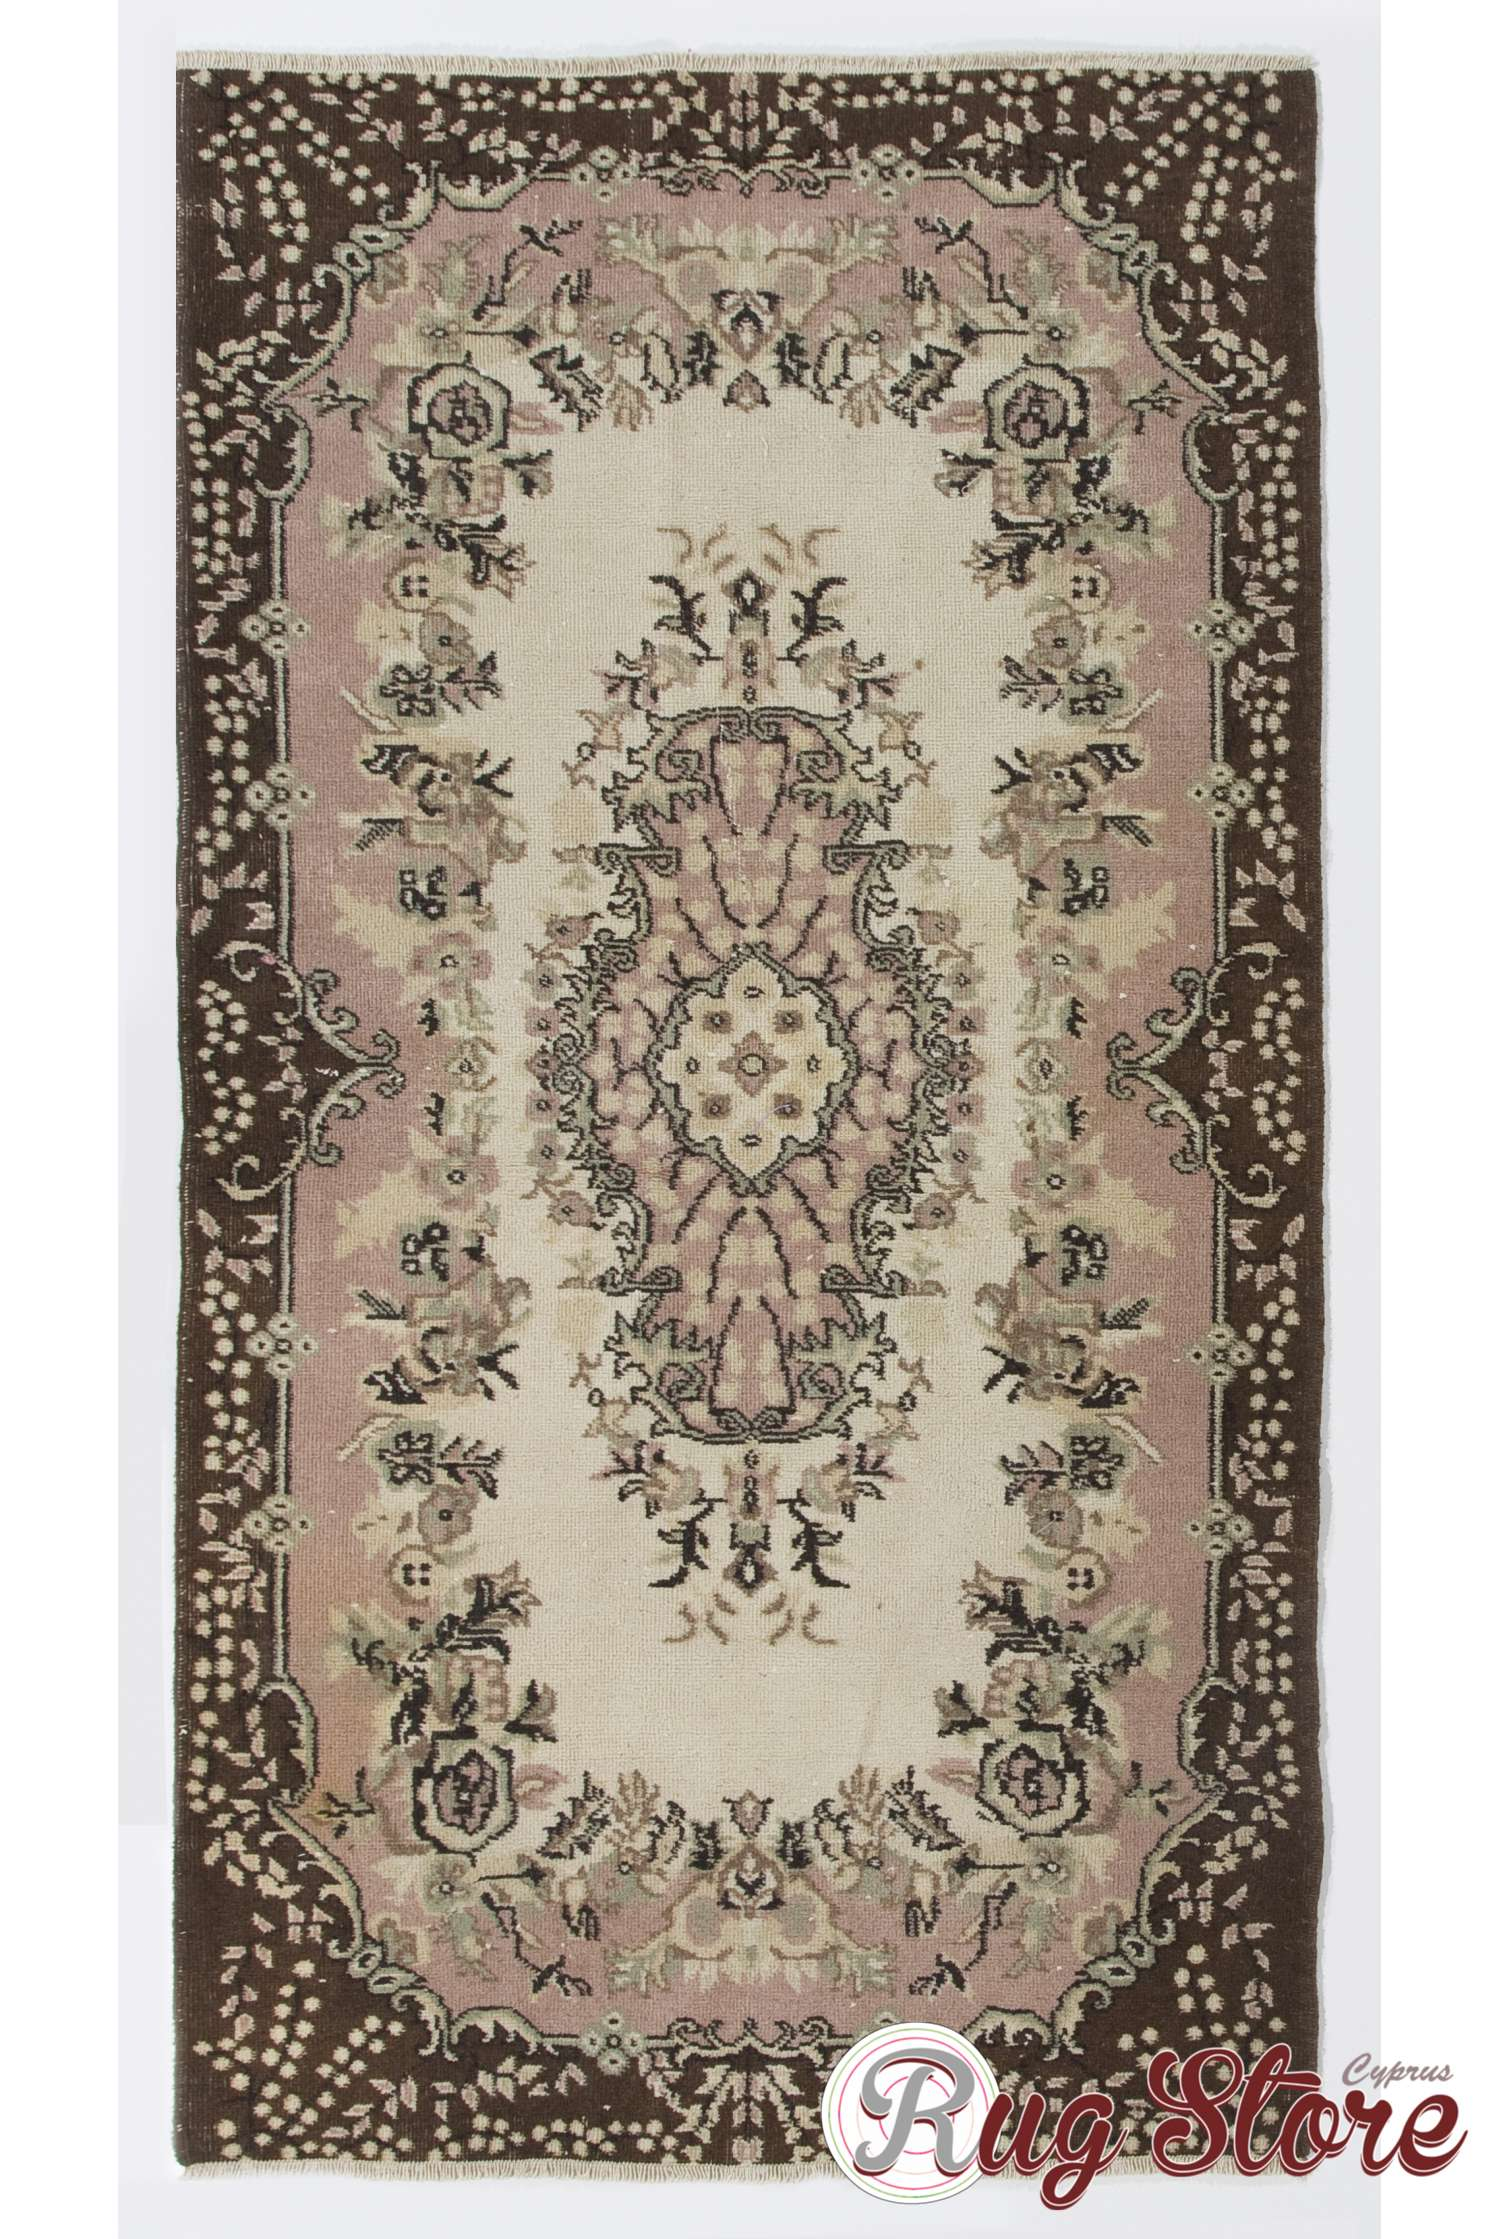 4 39 x 7 39 4 117 x 215 cm turkish antique washed rug beige pink brown. Black Bedroom Furniture Sets. Home Design Ideas